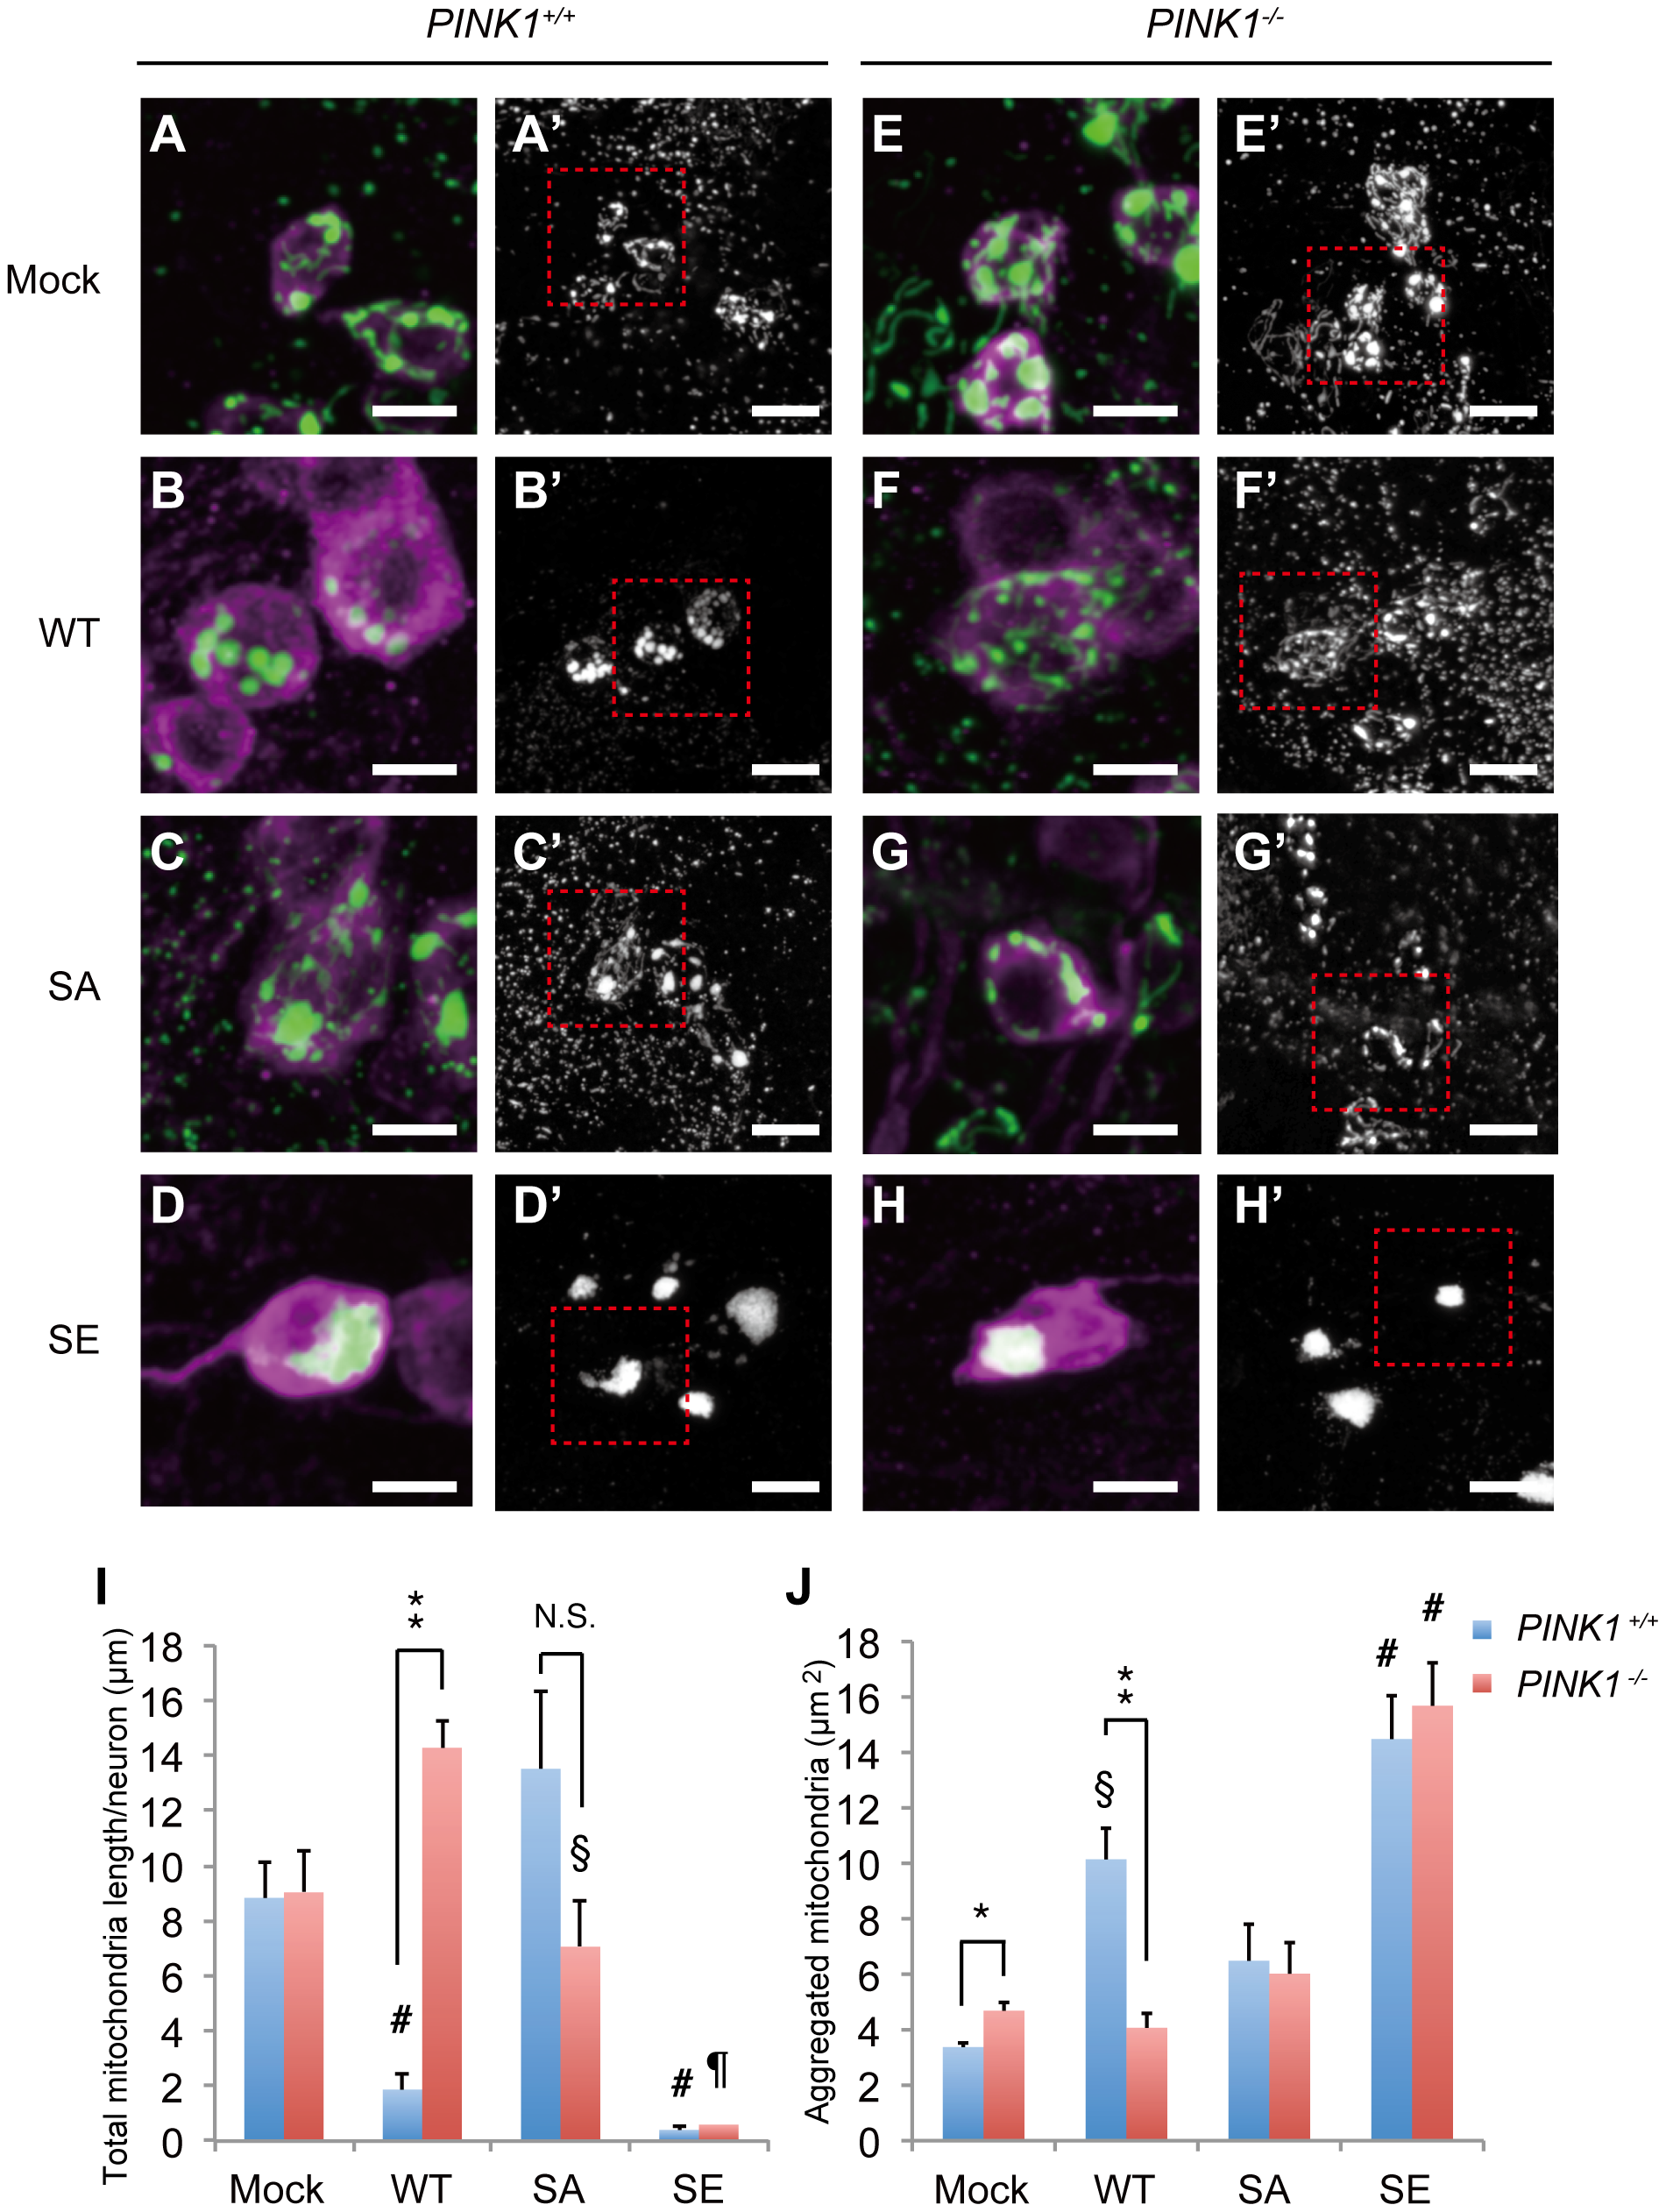 Parkin phosphorylation regulates mitochondrial morphology and the distribution of DA neurons.